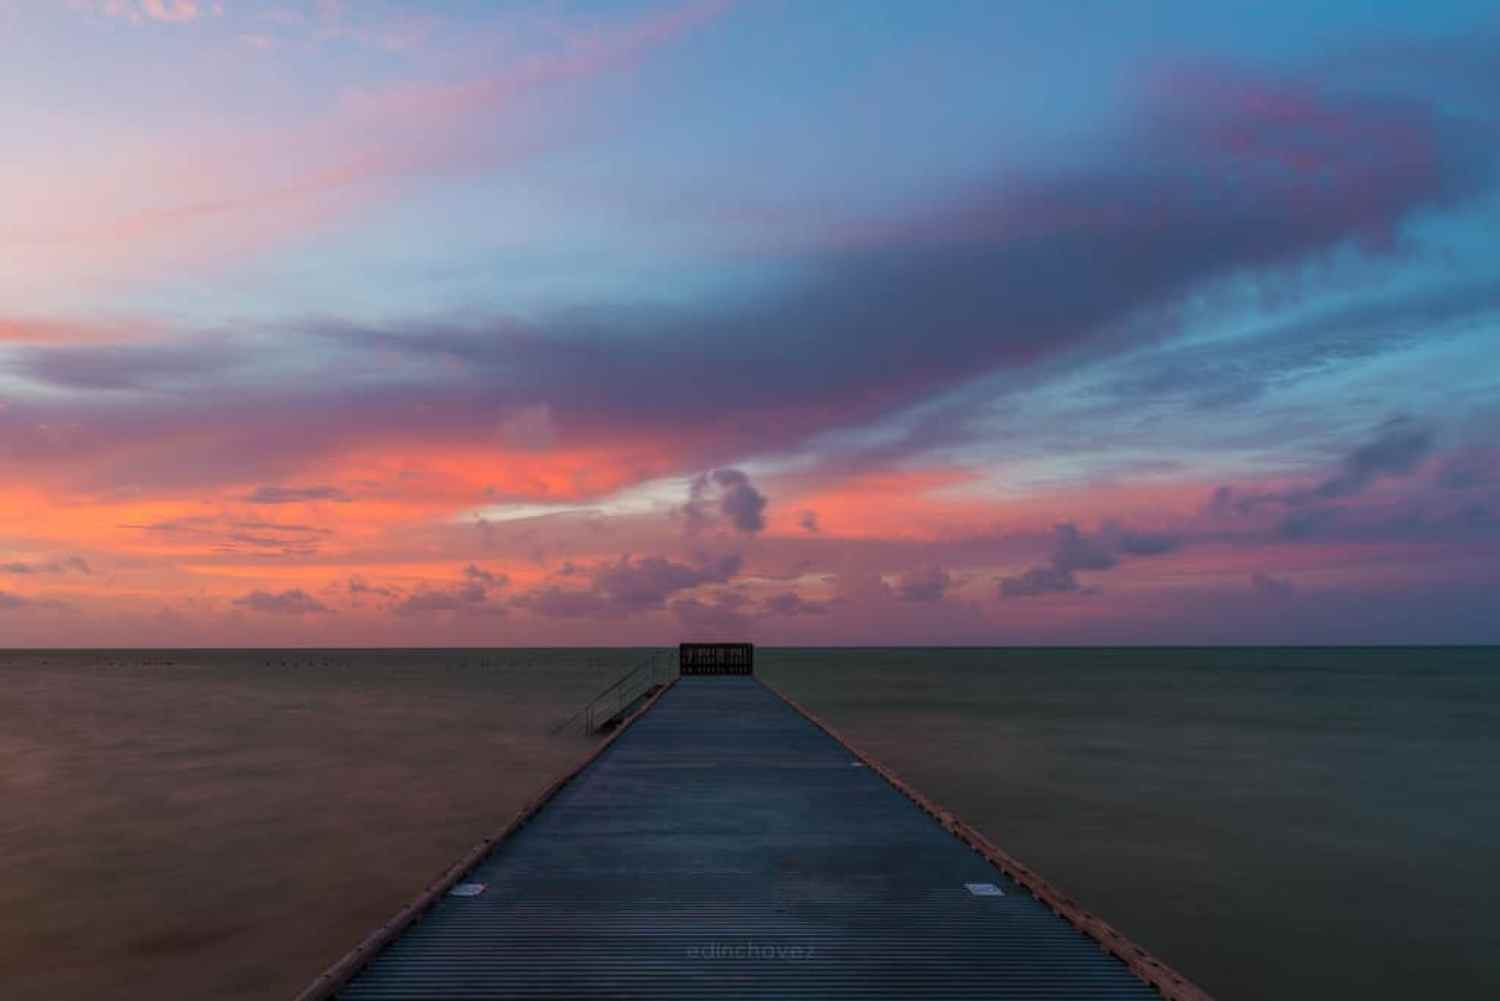 Best places to photograph in Key West - image  on http://blog.edinchavez.com